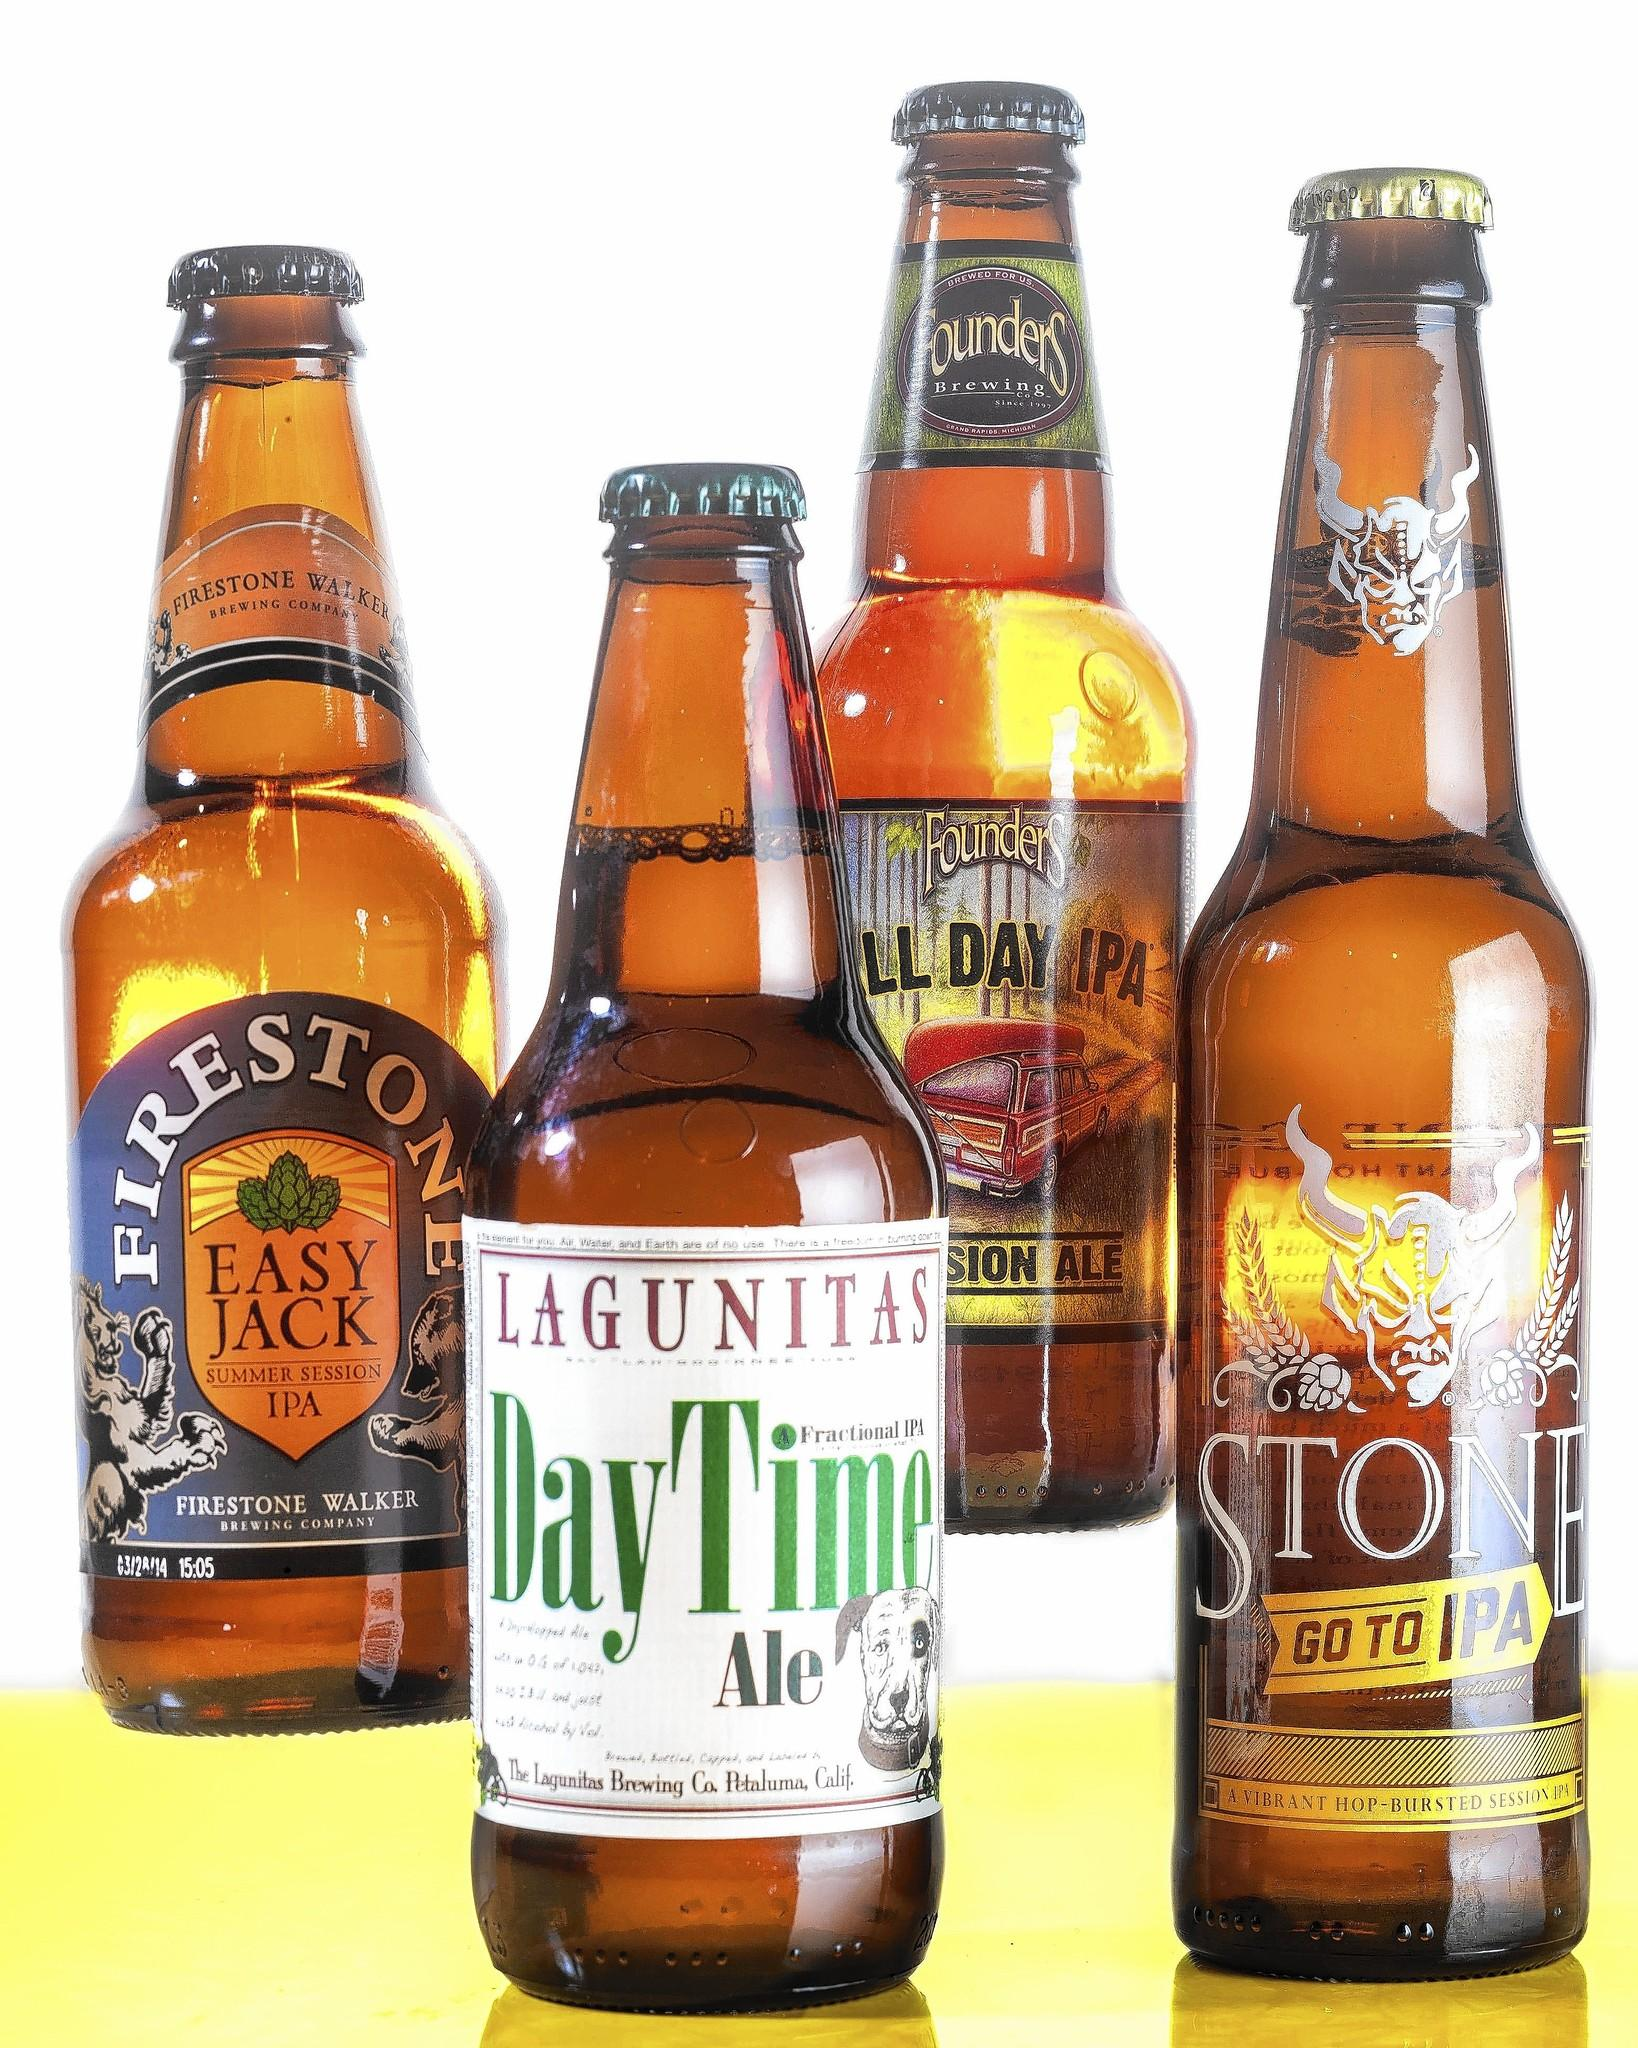 Lagunitas, Day Time Ale; Founder's All Day IPA; and Stone's Go To IPA; and Firestone's Easy Jack